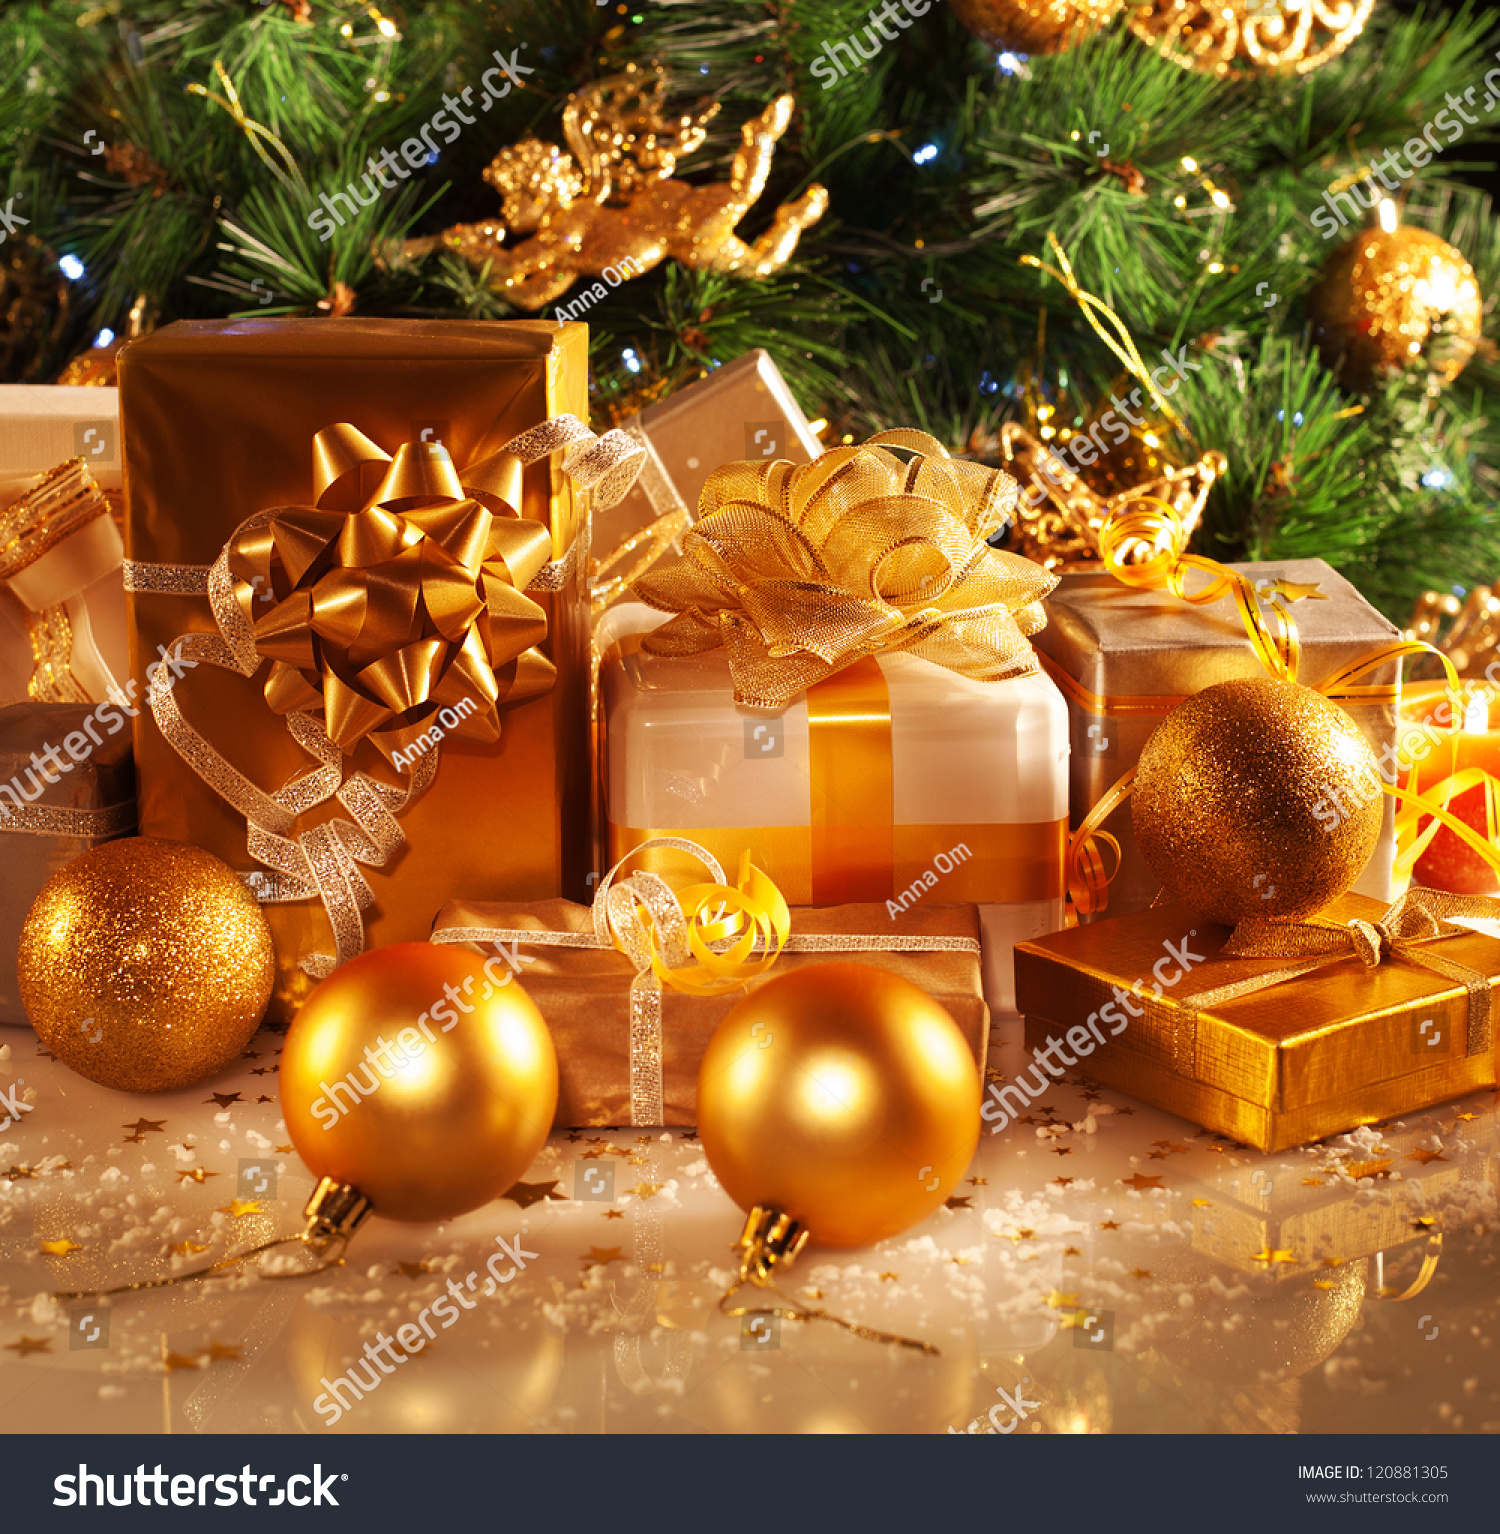 photo of luxury gift boxes under christmas tree new year home decorations golden wrapping